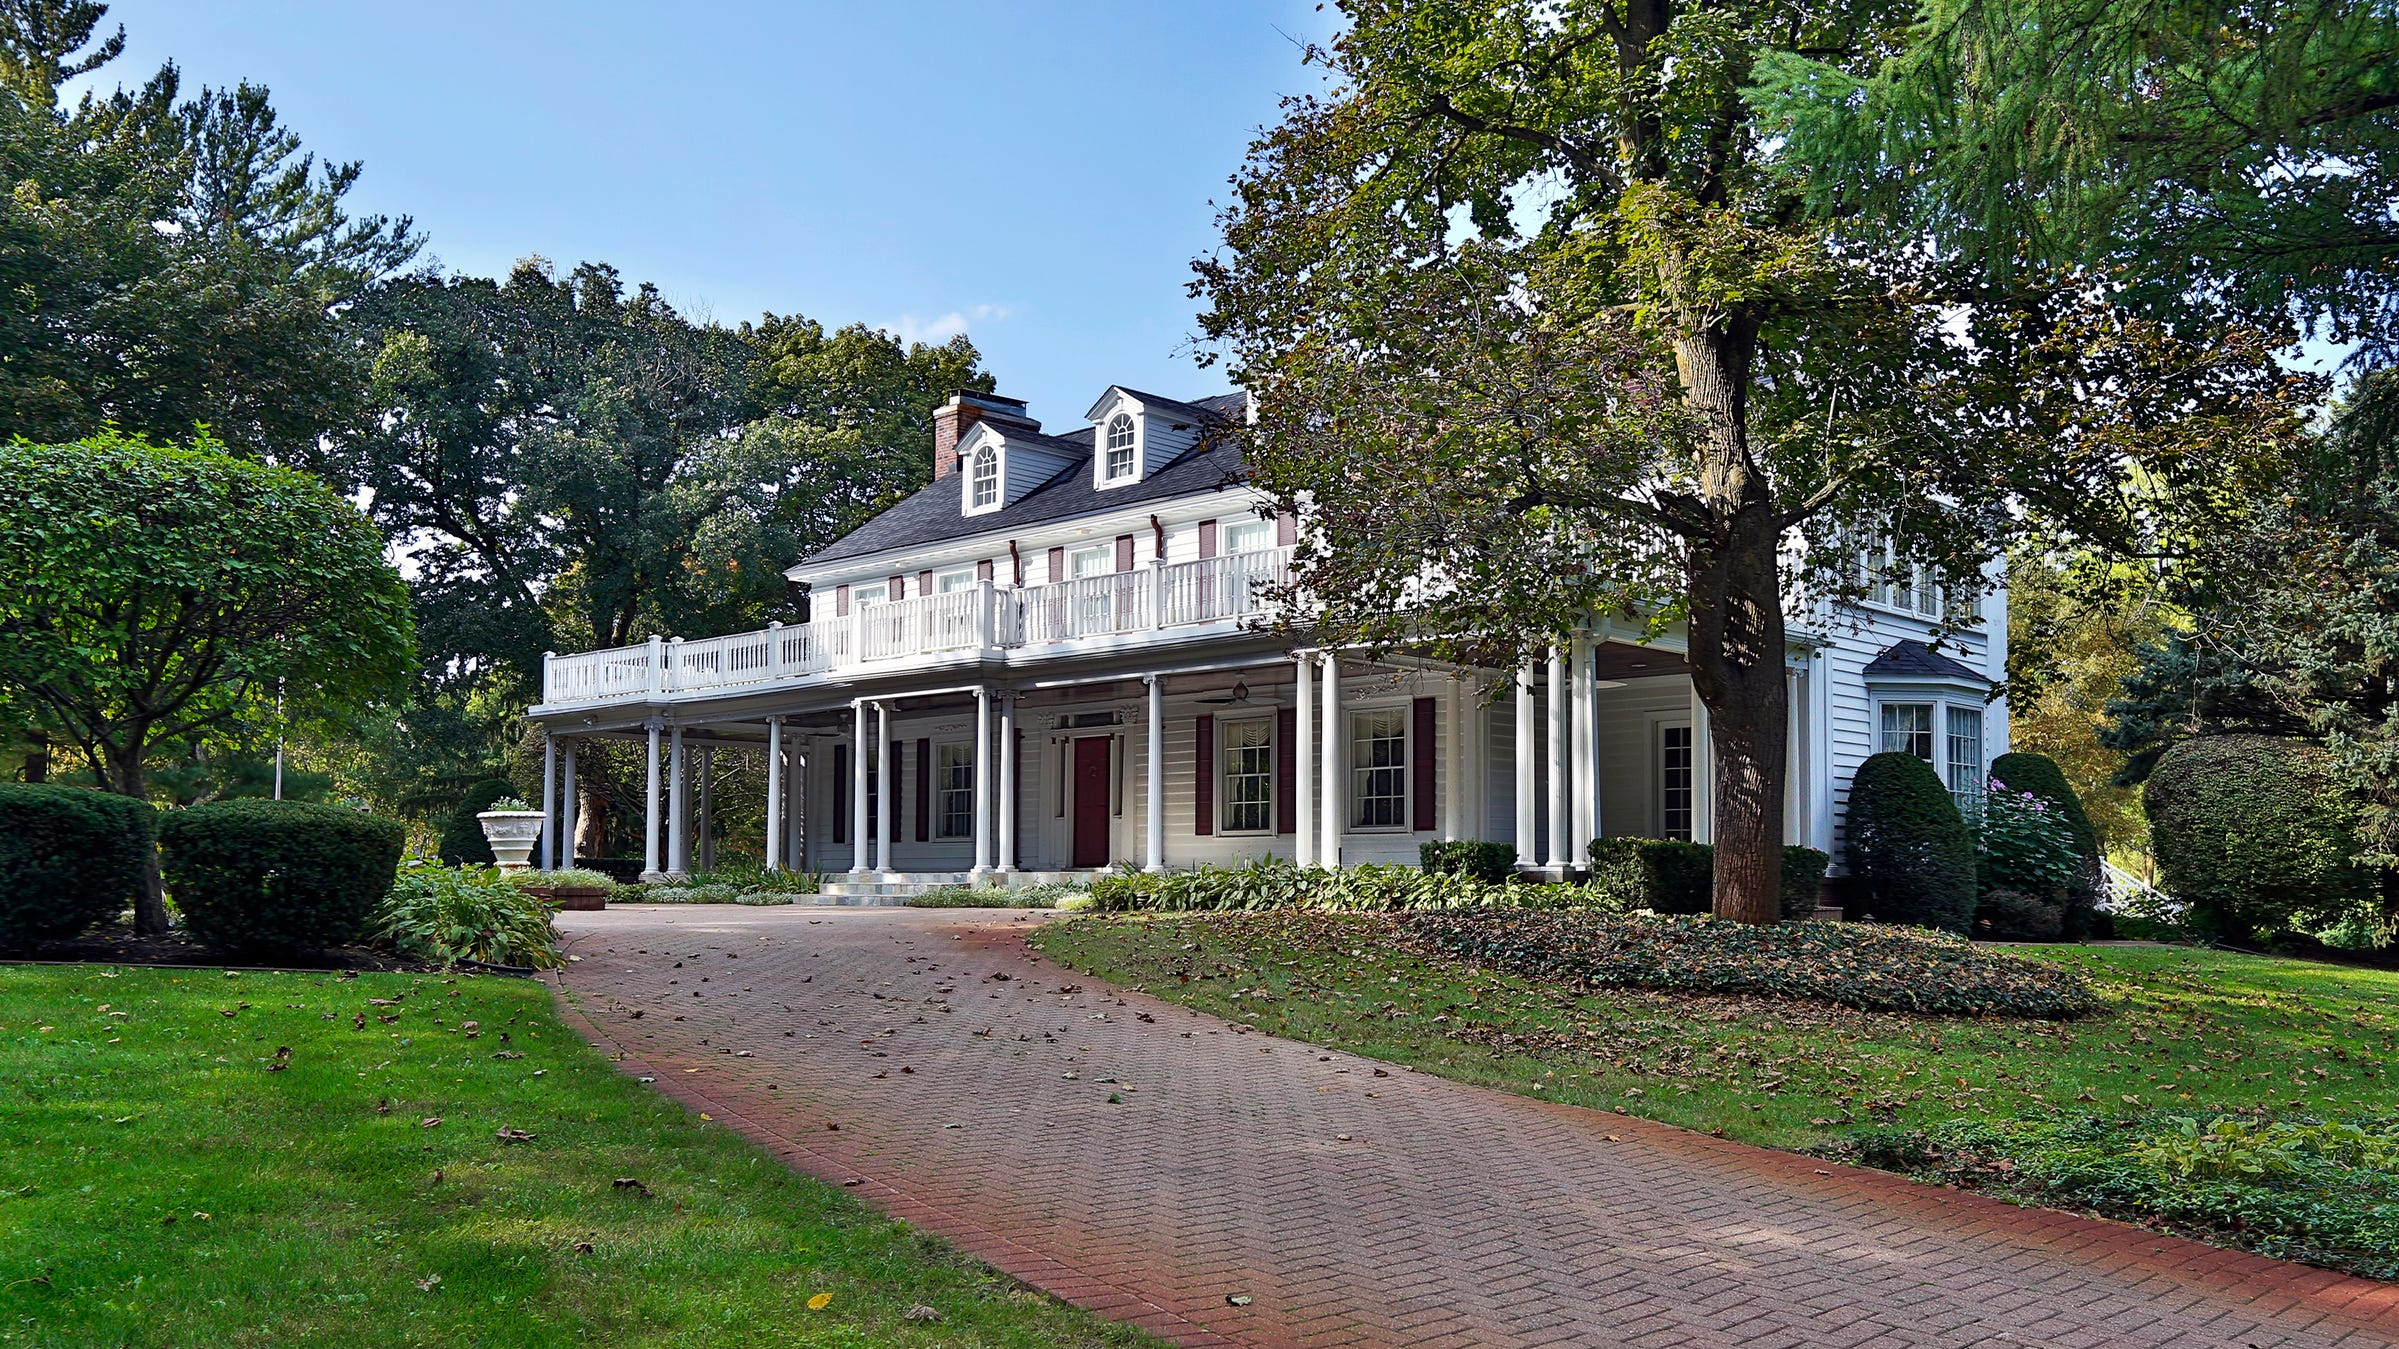 """Landmark house on the border of Novi and Northville has been home to a succession of entrepreneurs, including the late """"Cadillac King"""" Don Massey. The long colonnade style porch has a second-floor veranda above."""